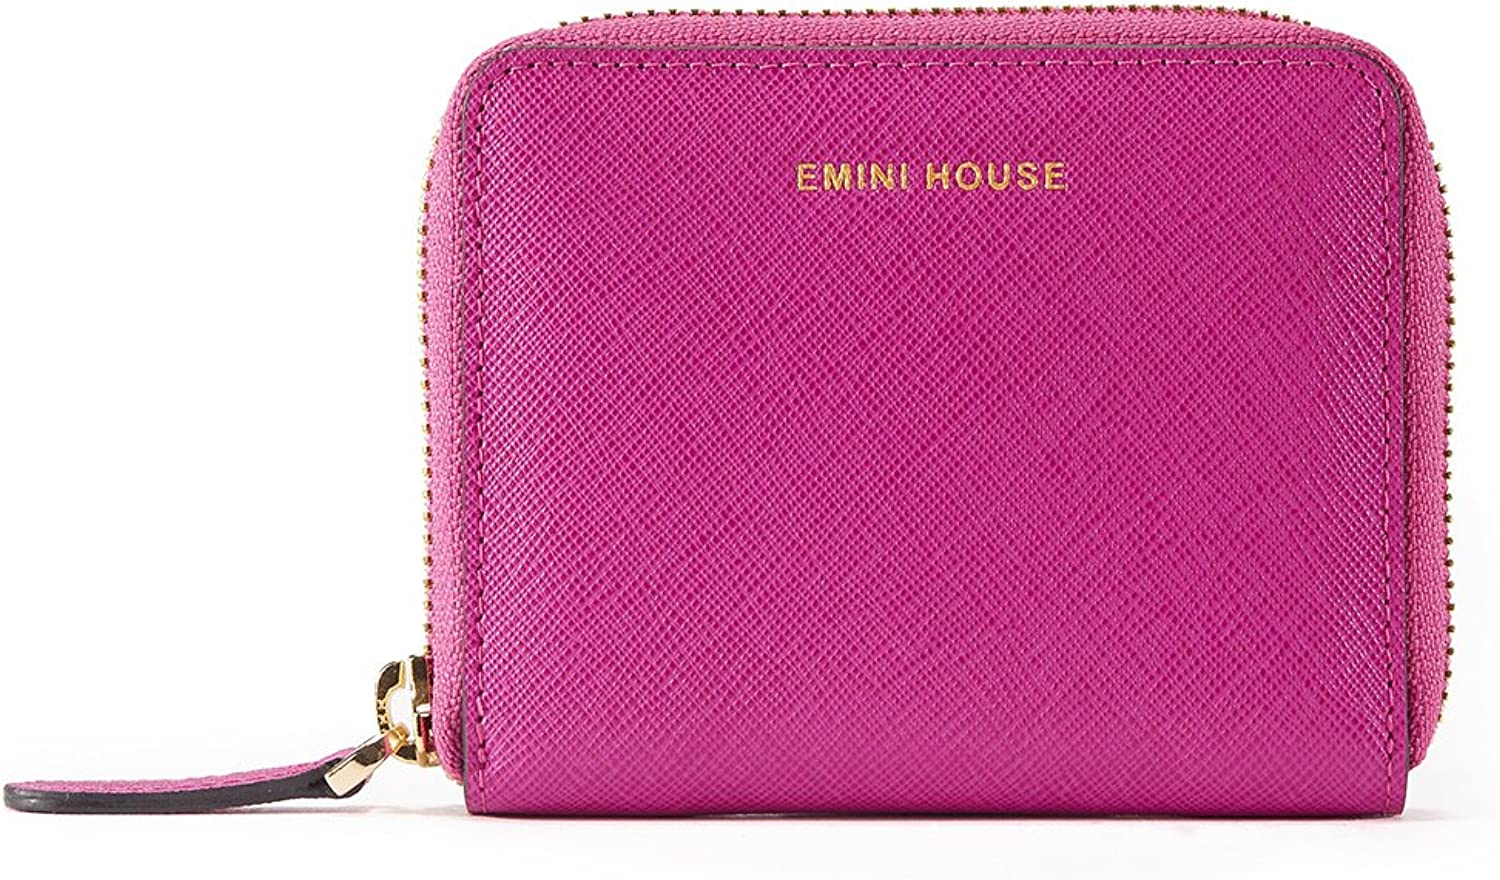 EMINI HOUSE Concise Short Style Wallets Coin Purses